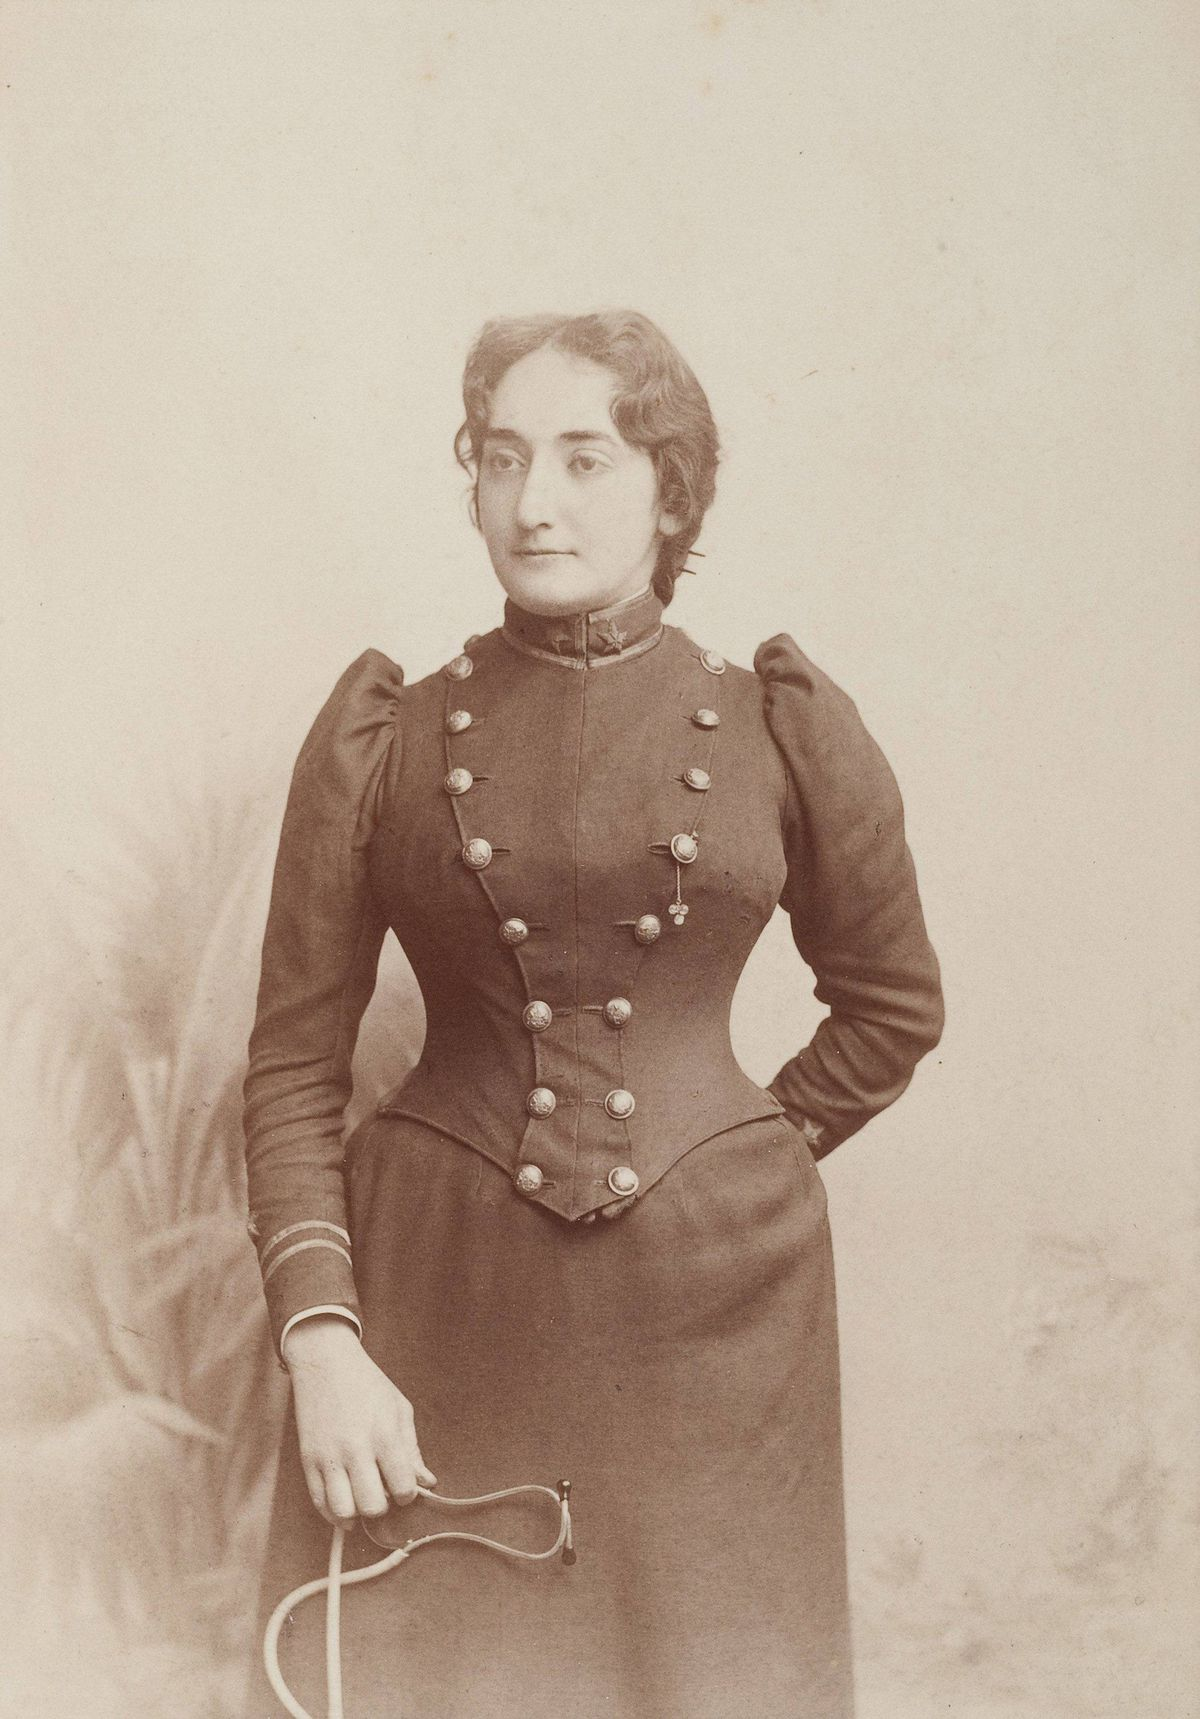 Claribel Cone as a resident physician, Blockley Almshouse, Philadelphia, circa 1891-1892, Gilbert Studios, Philadelphia, PA. Dr. Claribel and Miss Etta Cone Papers, Archives and Manuscripts Collections, The Baltimore Museum of Art.